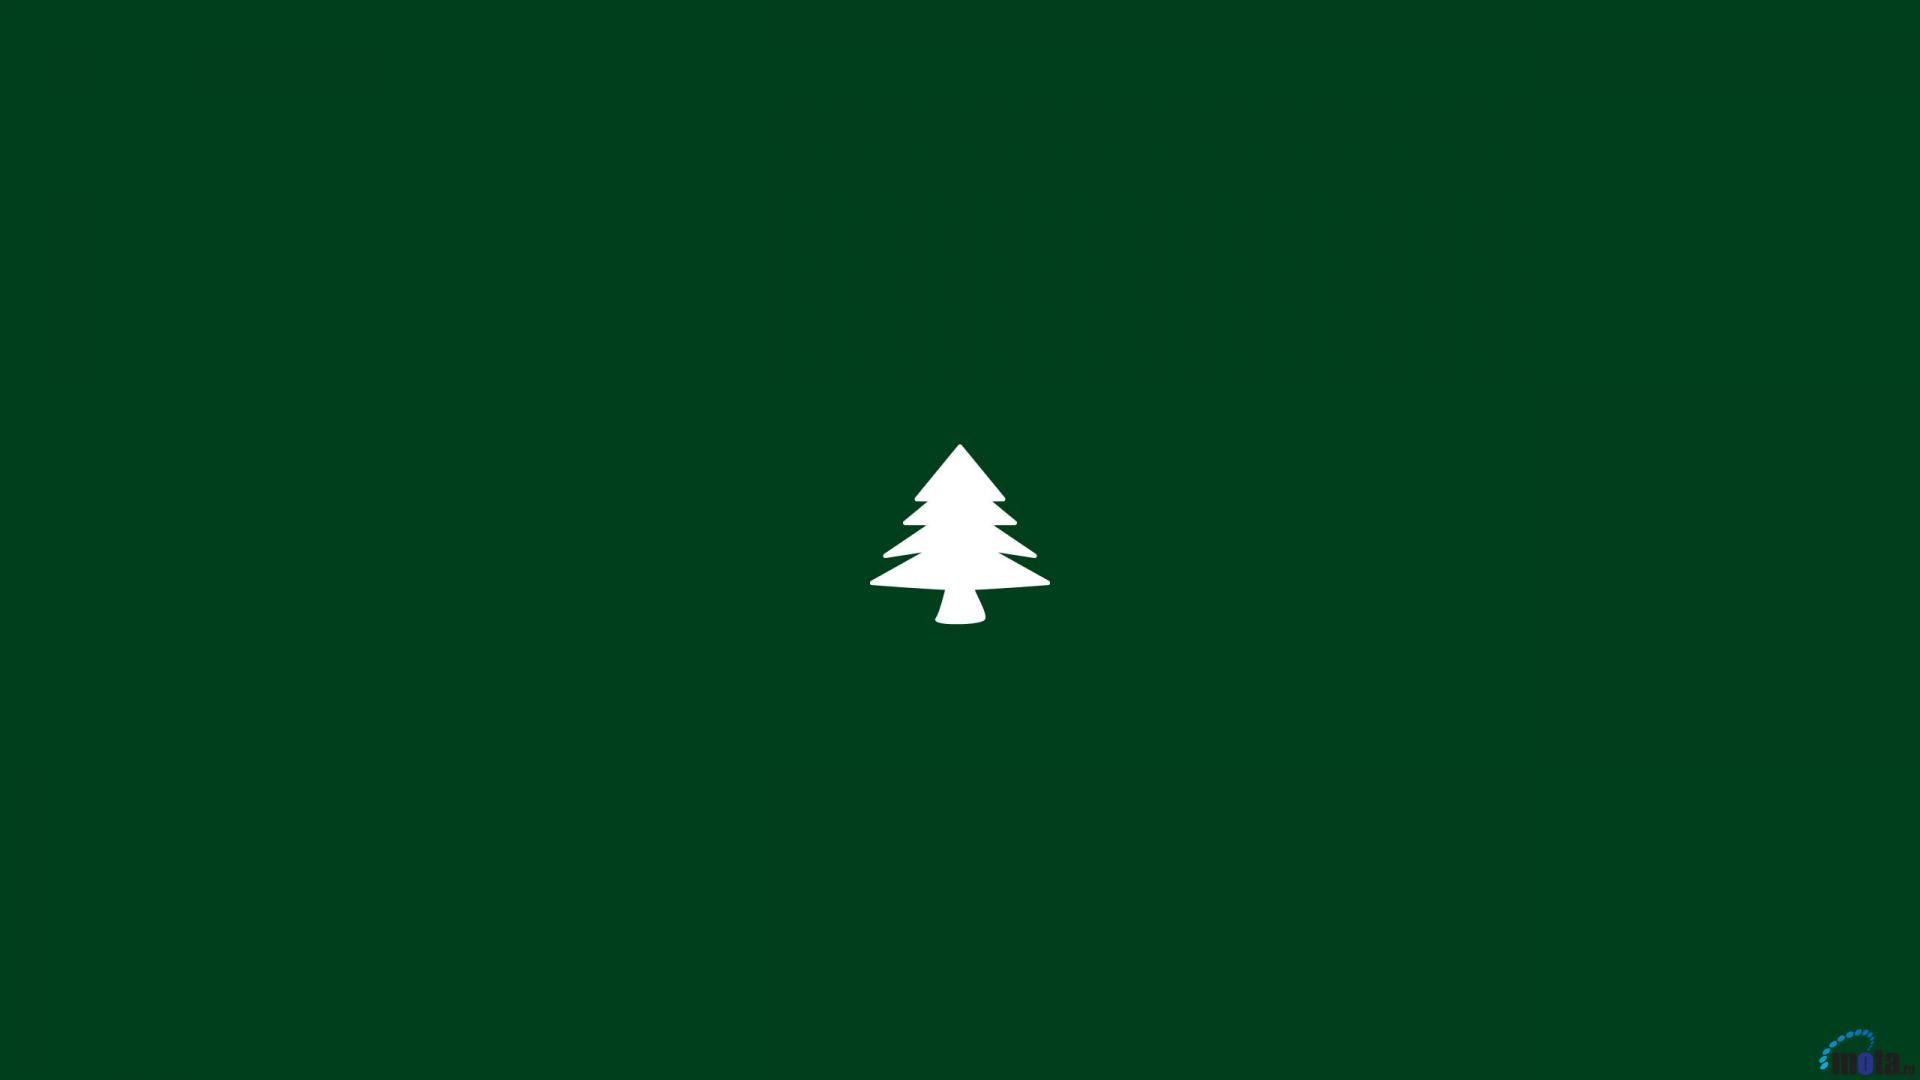 Green Background Christmas Tree Minimal 1920x1080